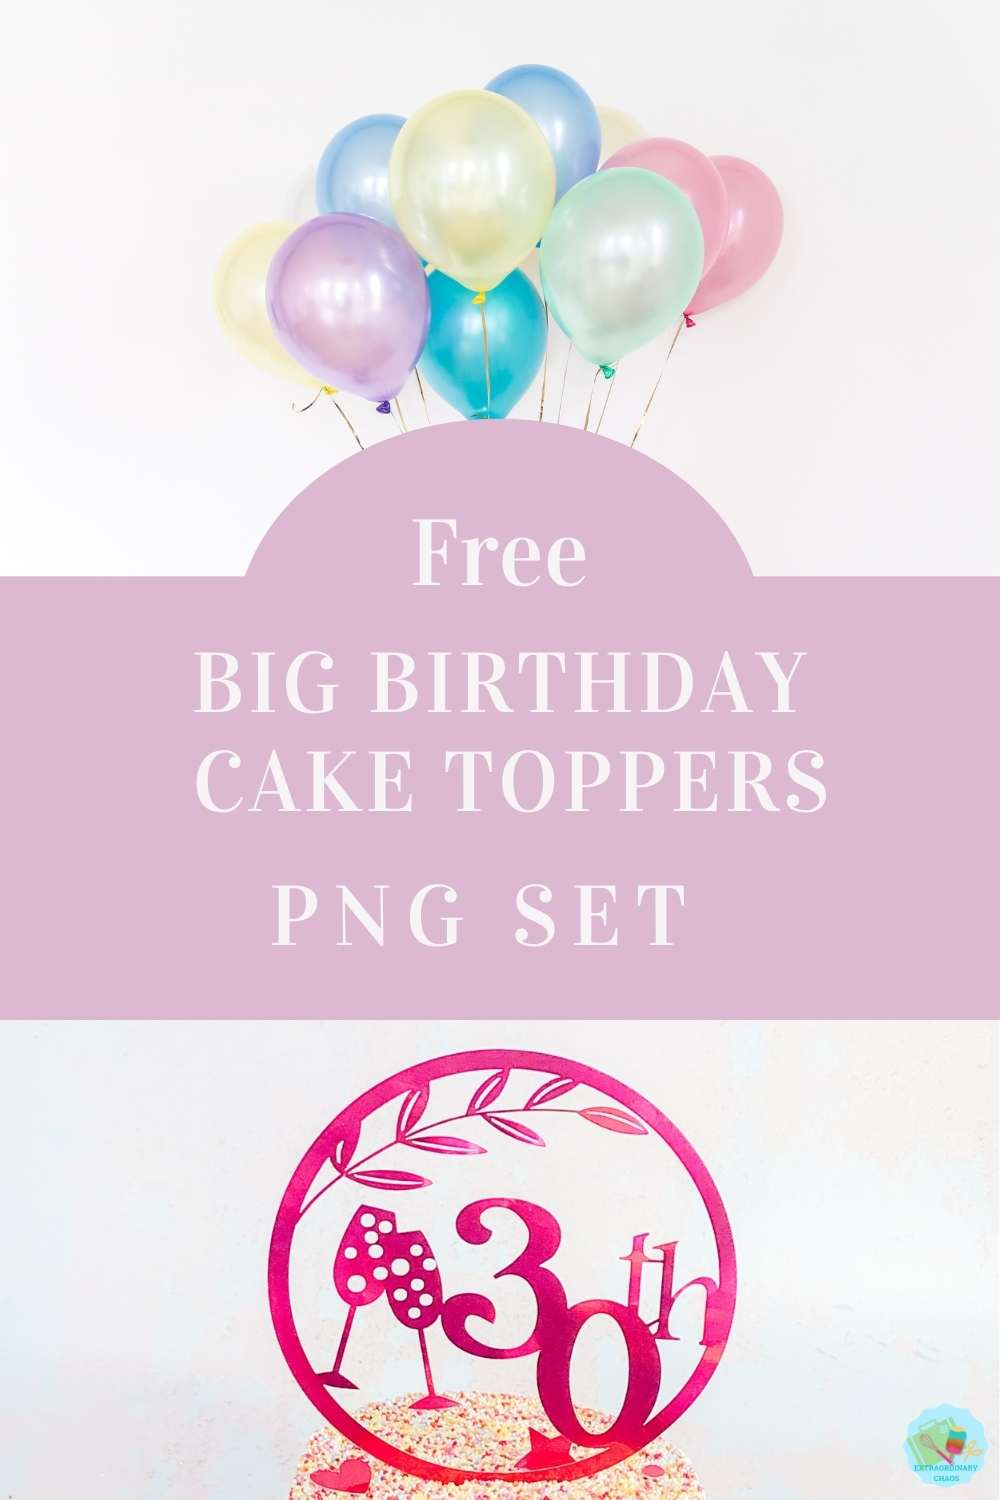 Cricut Special Birthday Milestone birthday cake topper files PNG Files for multiple decorating birthday cakes